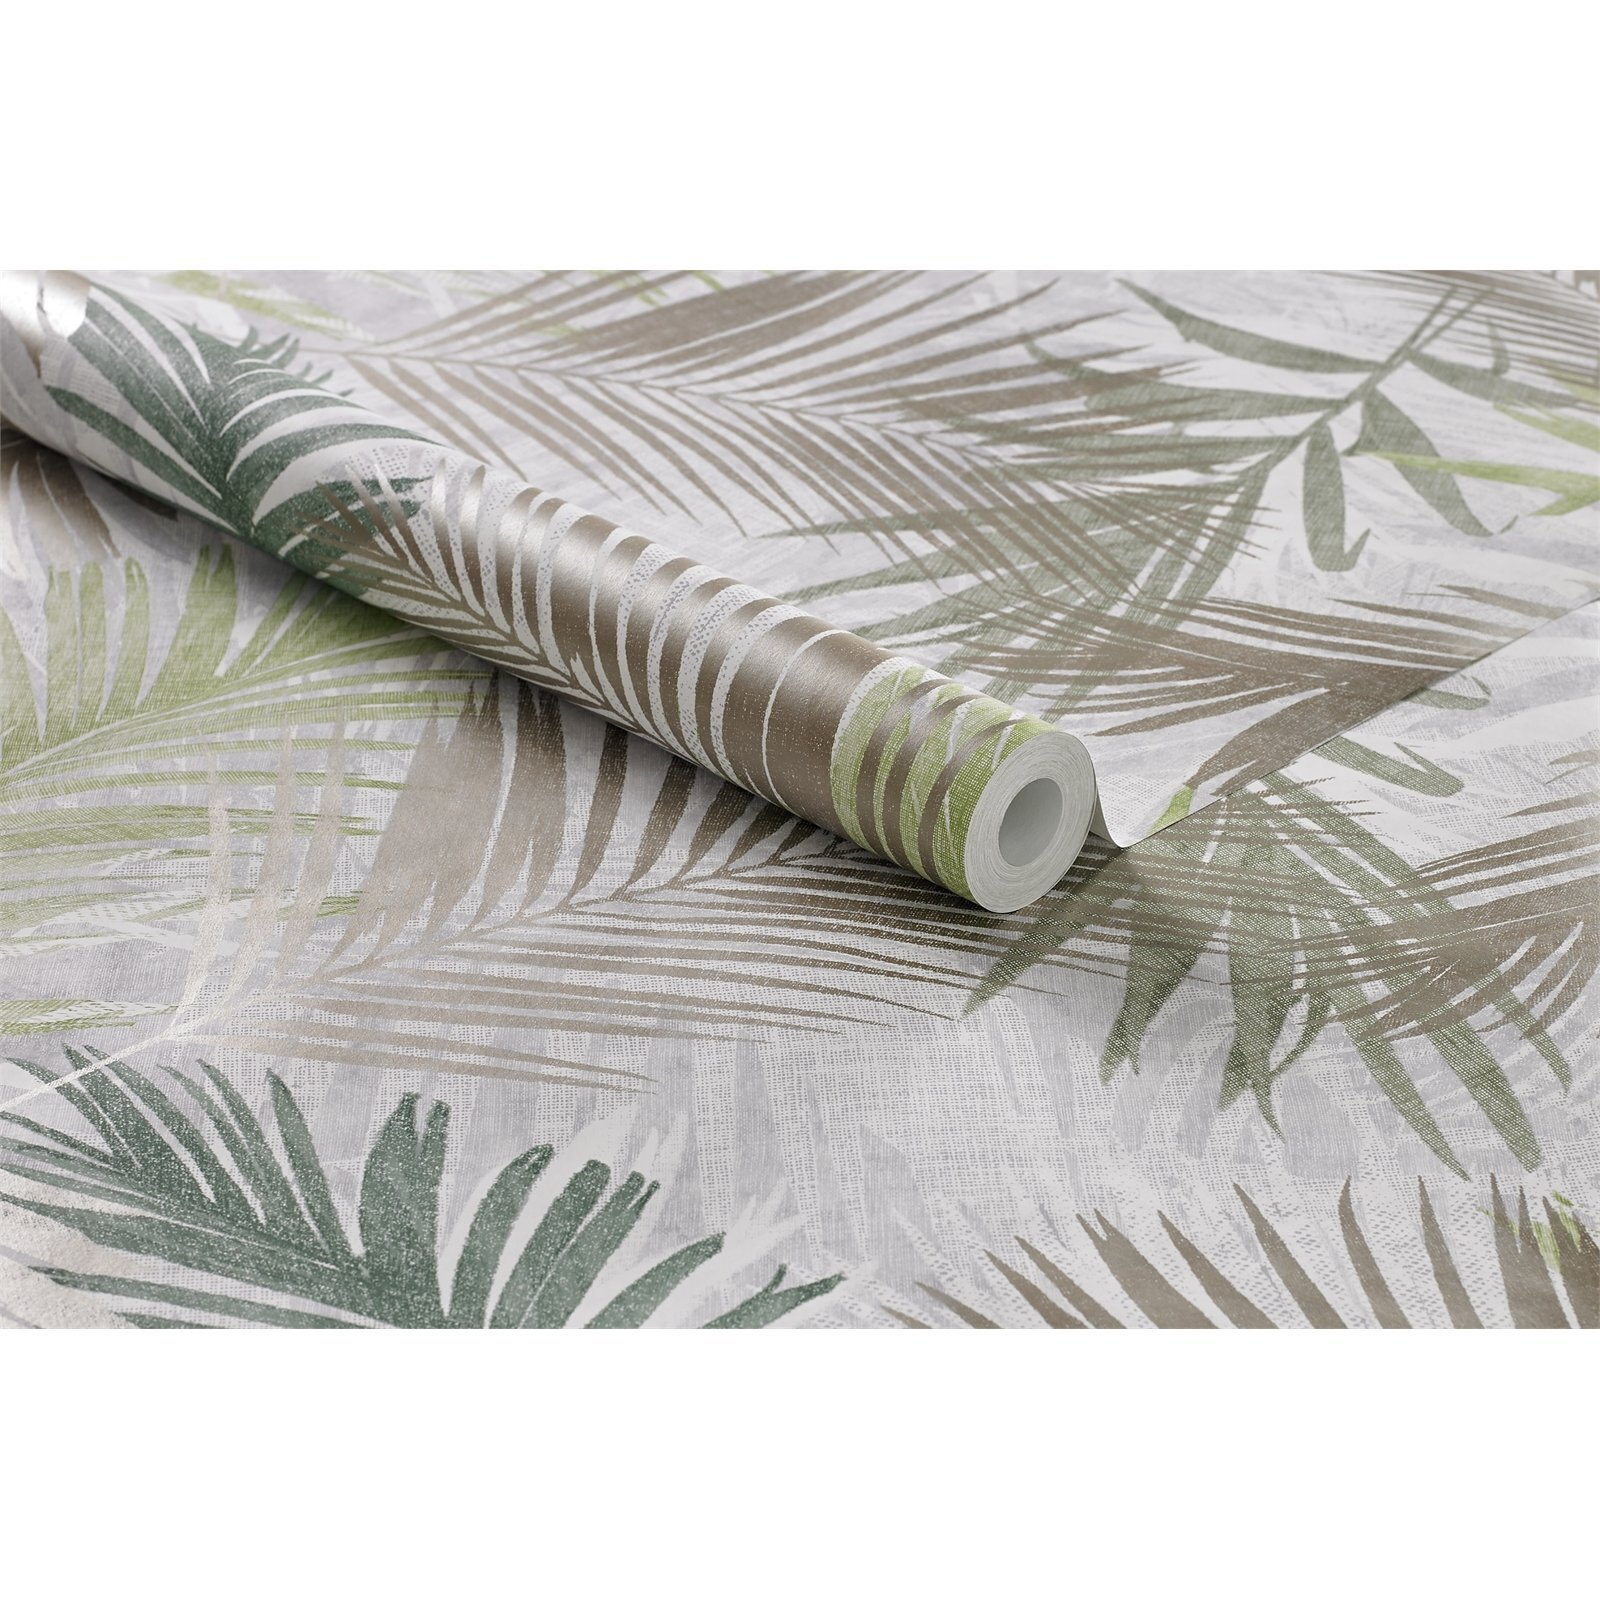 Boutique 52cm x 10m White / Gold / Green NWG Jungle Glam Wallpaper